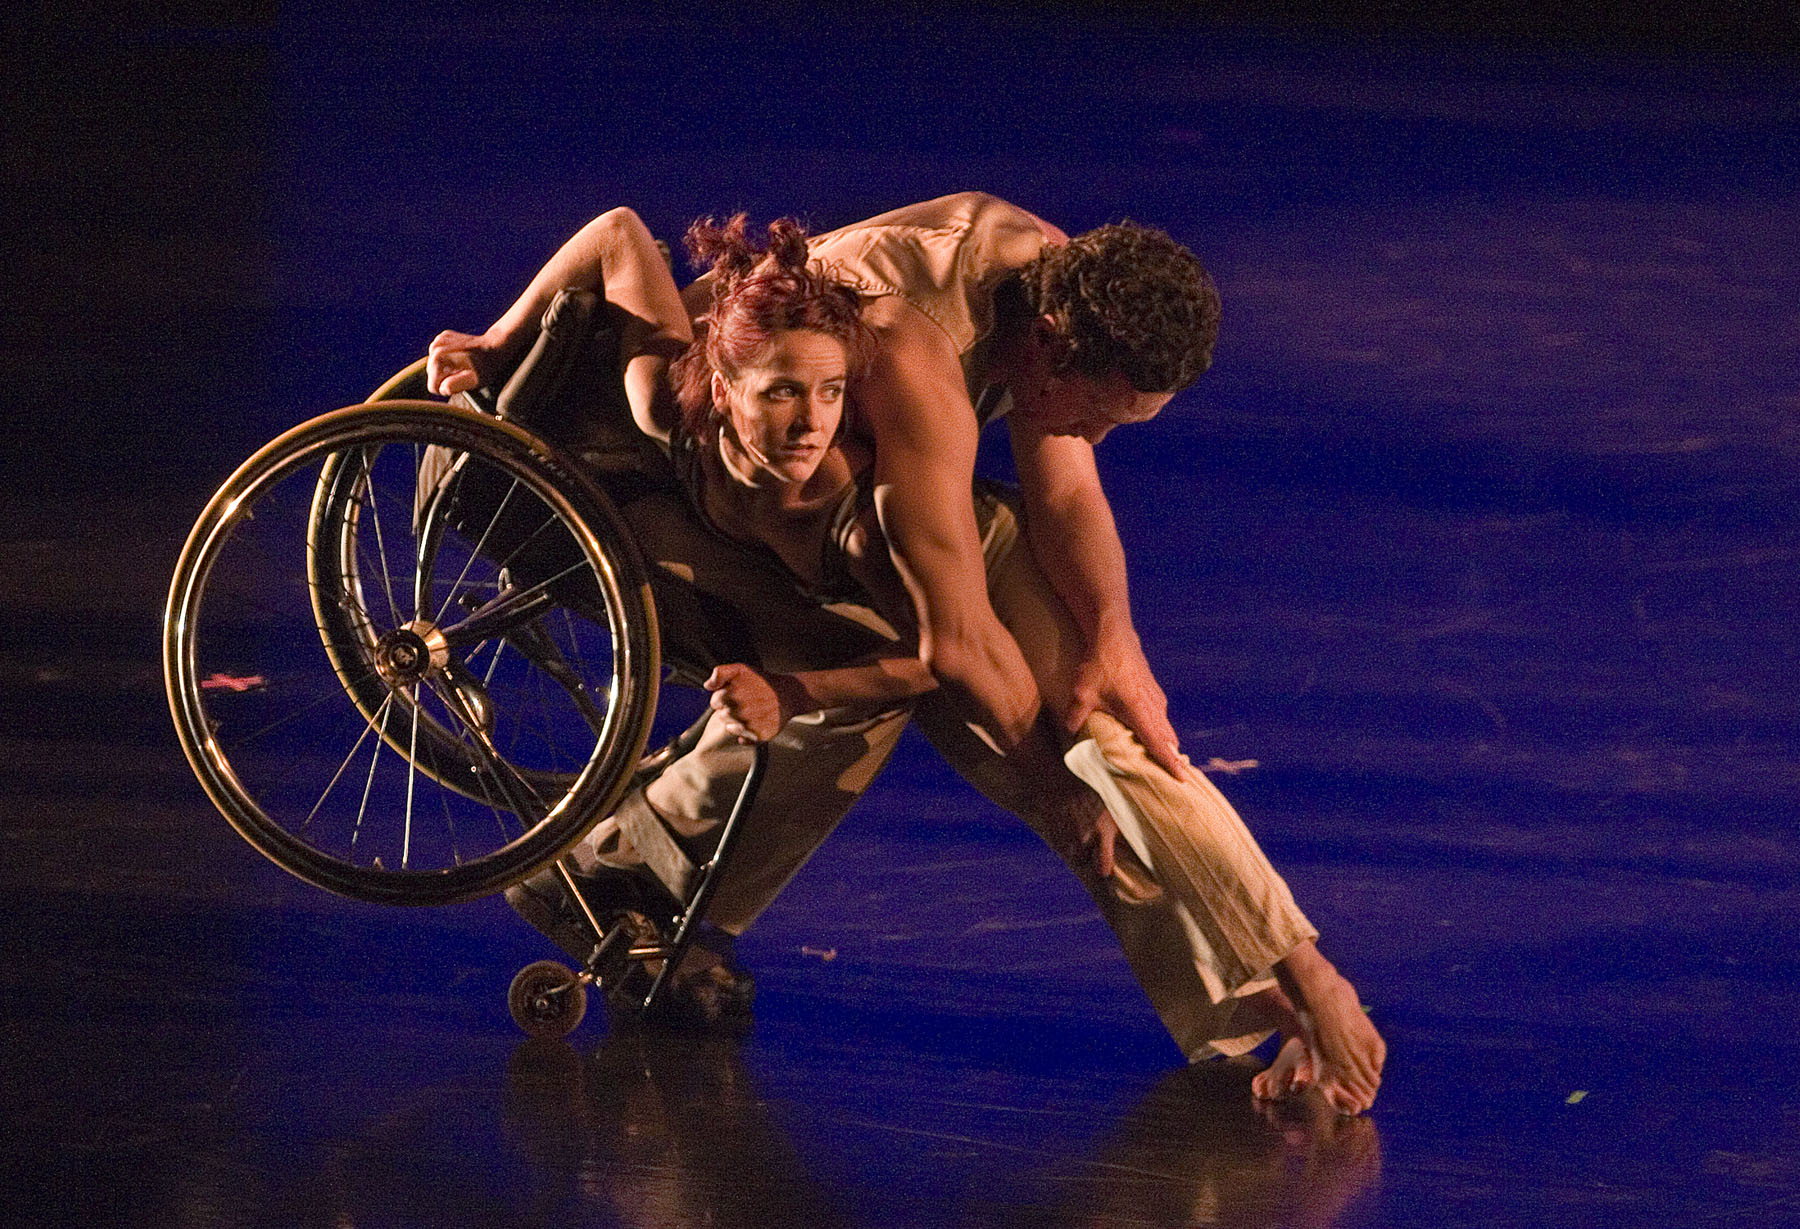 The AXIS Dance Company is seeking dancers, with and without disabilities, to perform Oct. 8 at the Lied Center for Performing Arts.